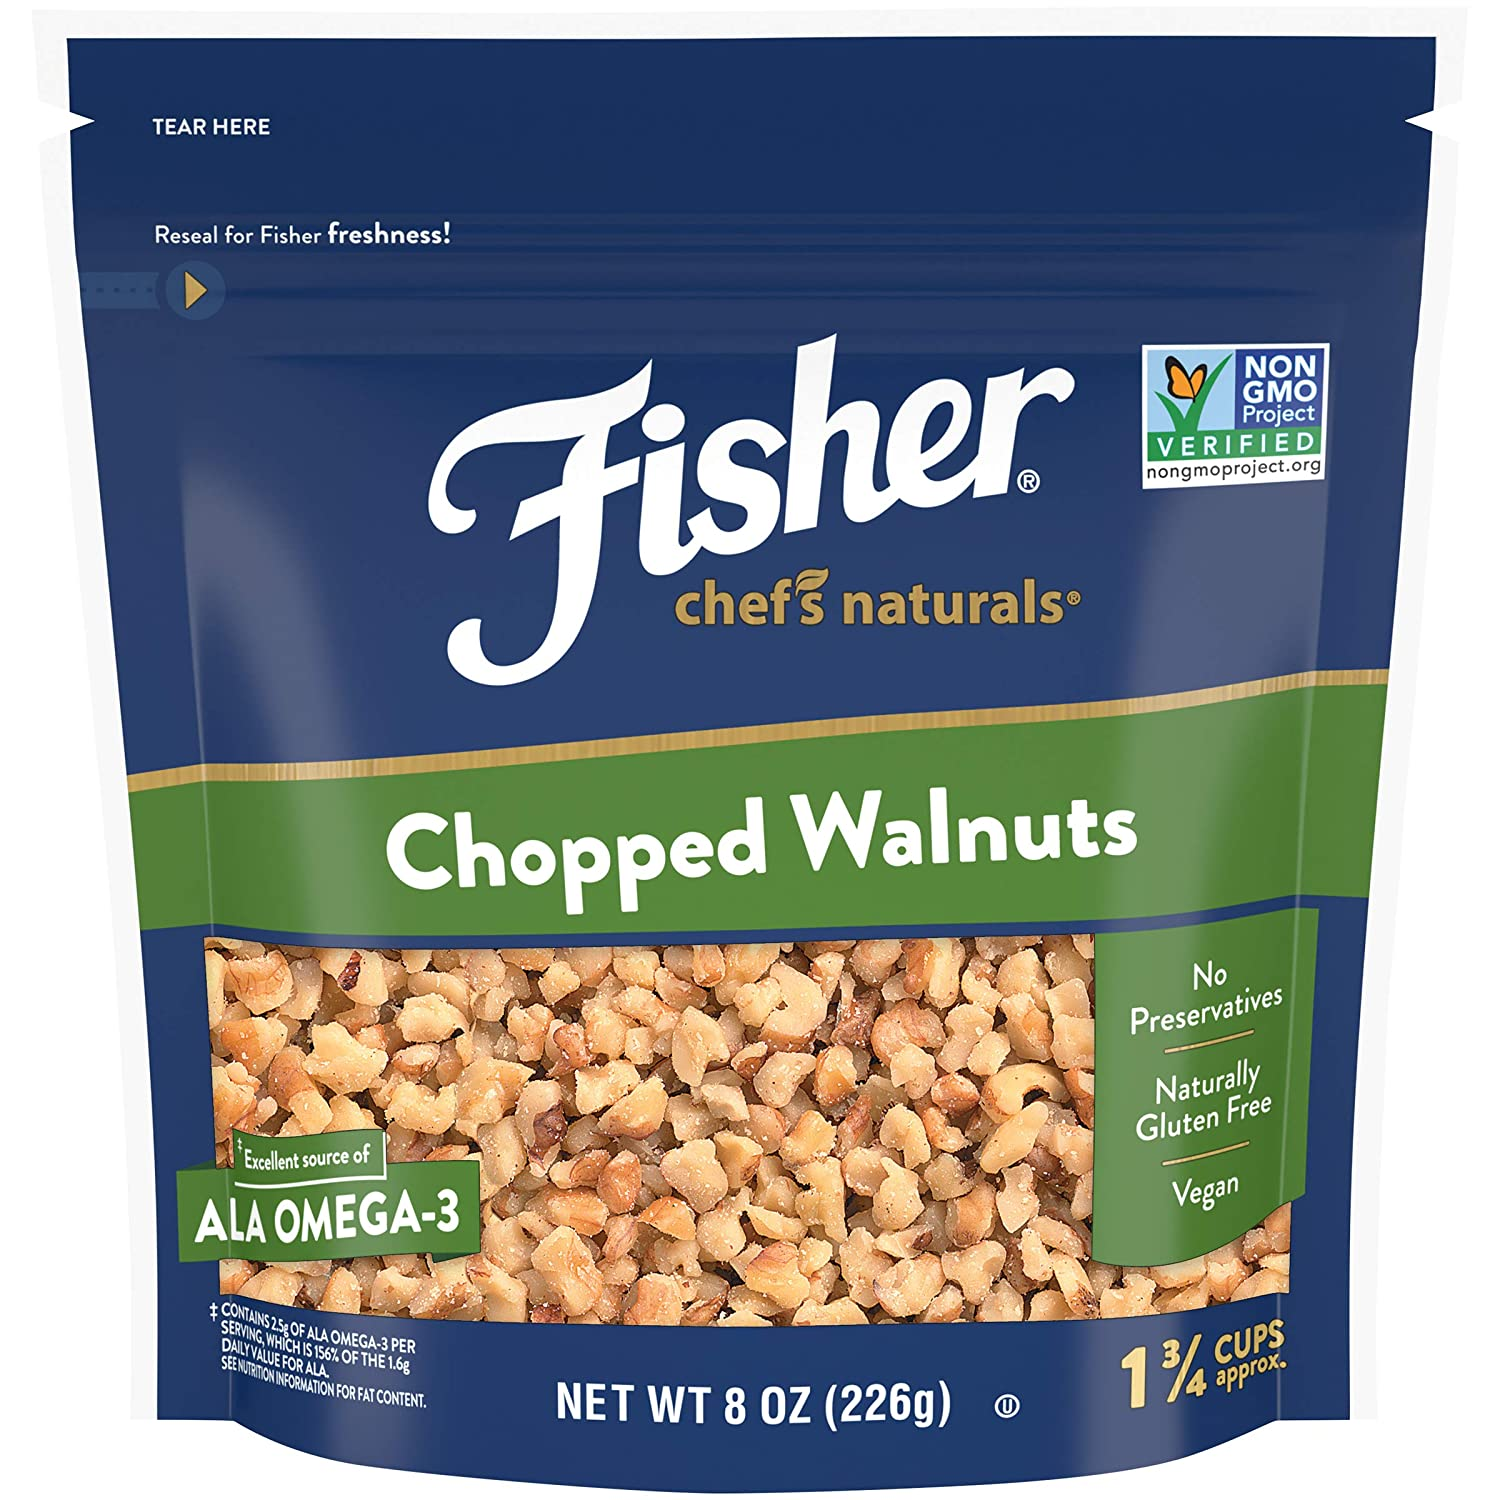 FISHER Chef's Naturals Chopped Walnuts oz Limited Special Price 8 F Naturally Fashionable Gluten